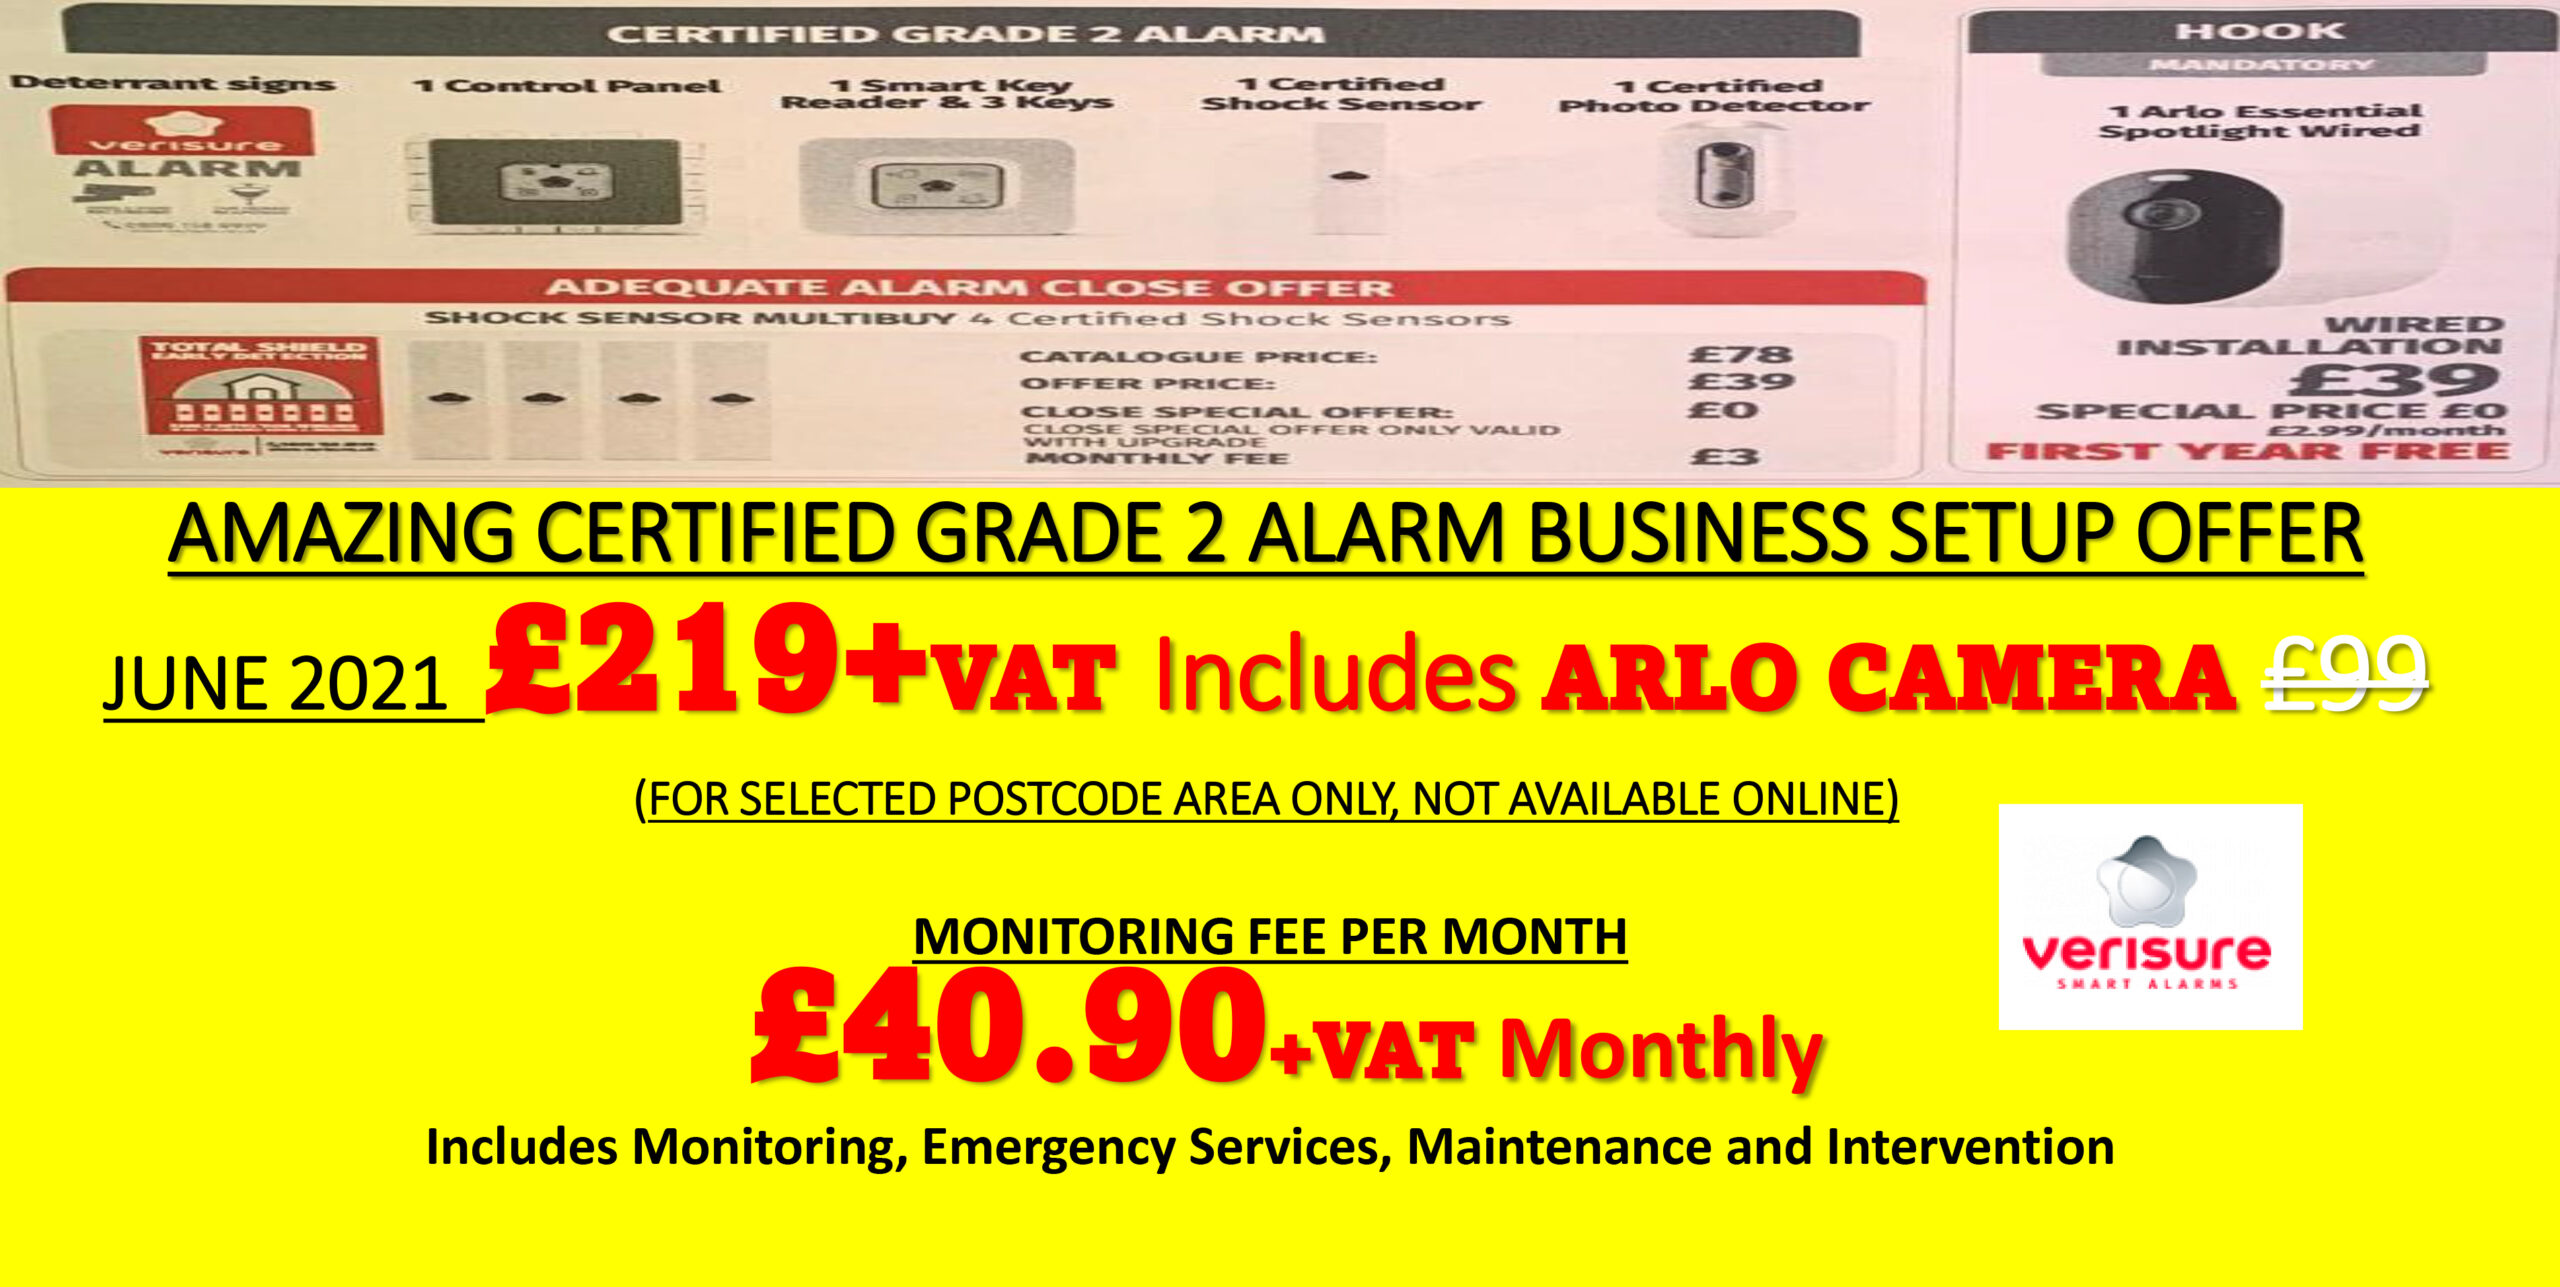 AMAZING OFFER FEBURARY 2021 WITH FREE DOORBELL ALARM DISCOUNT FR